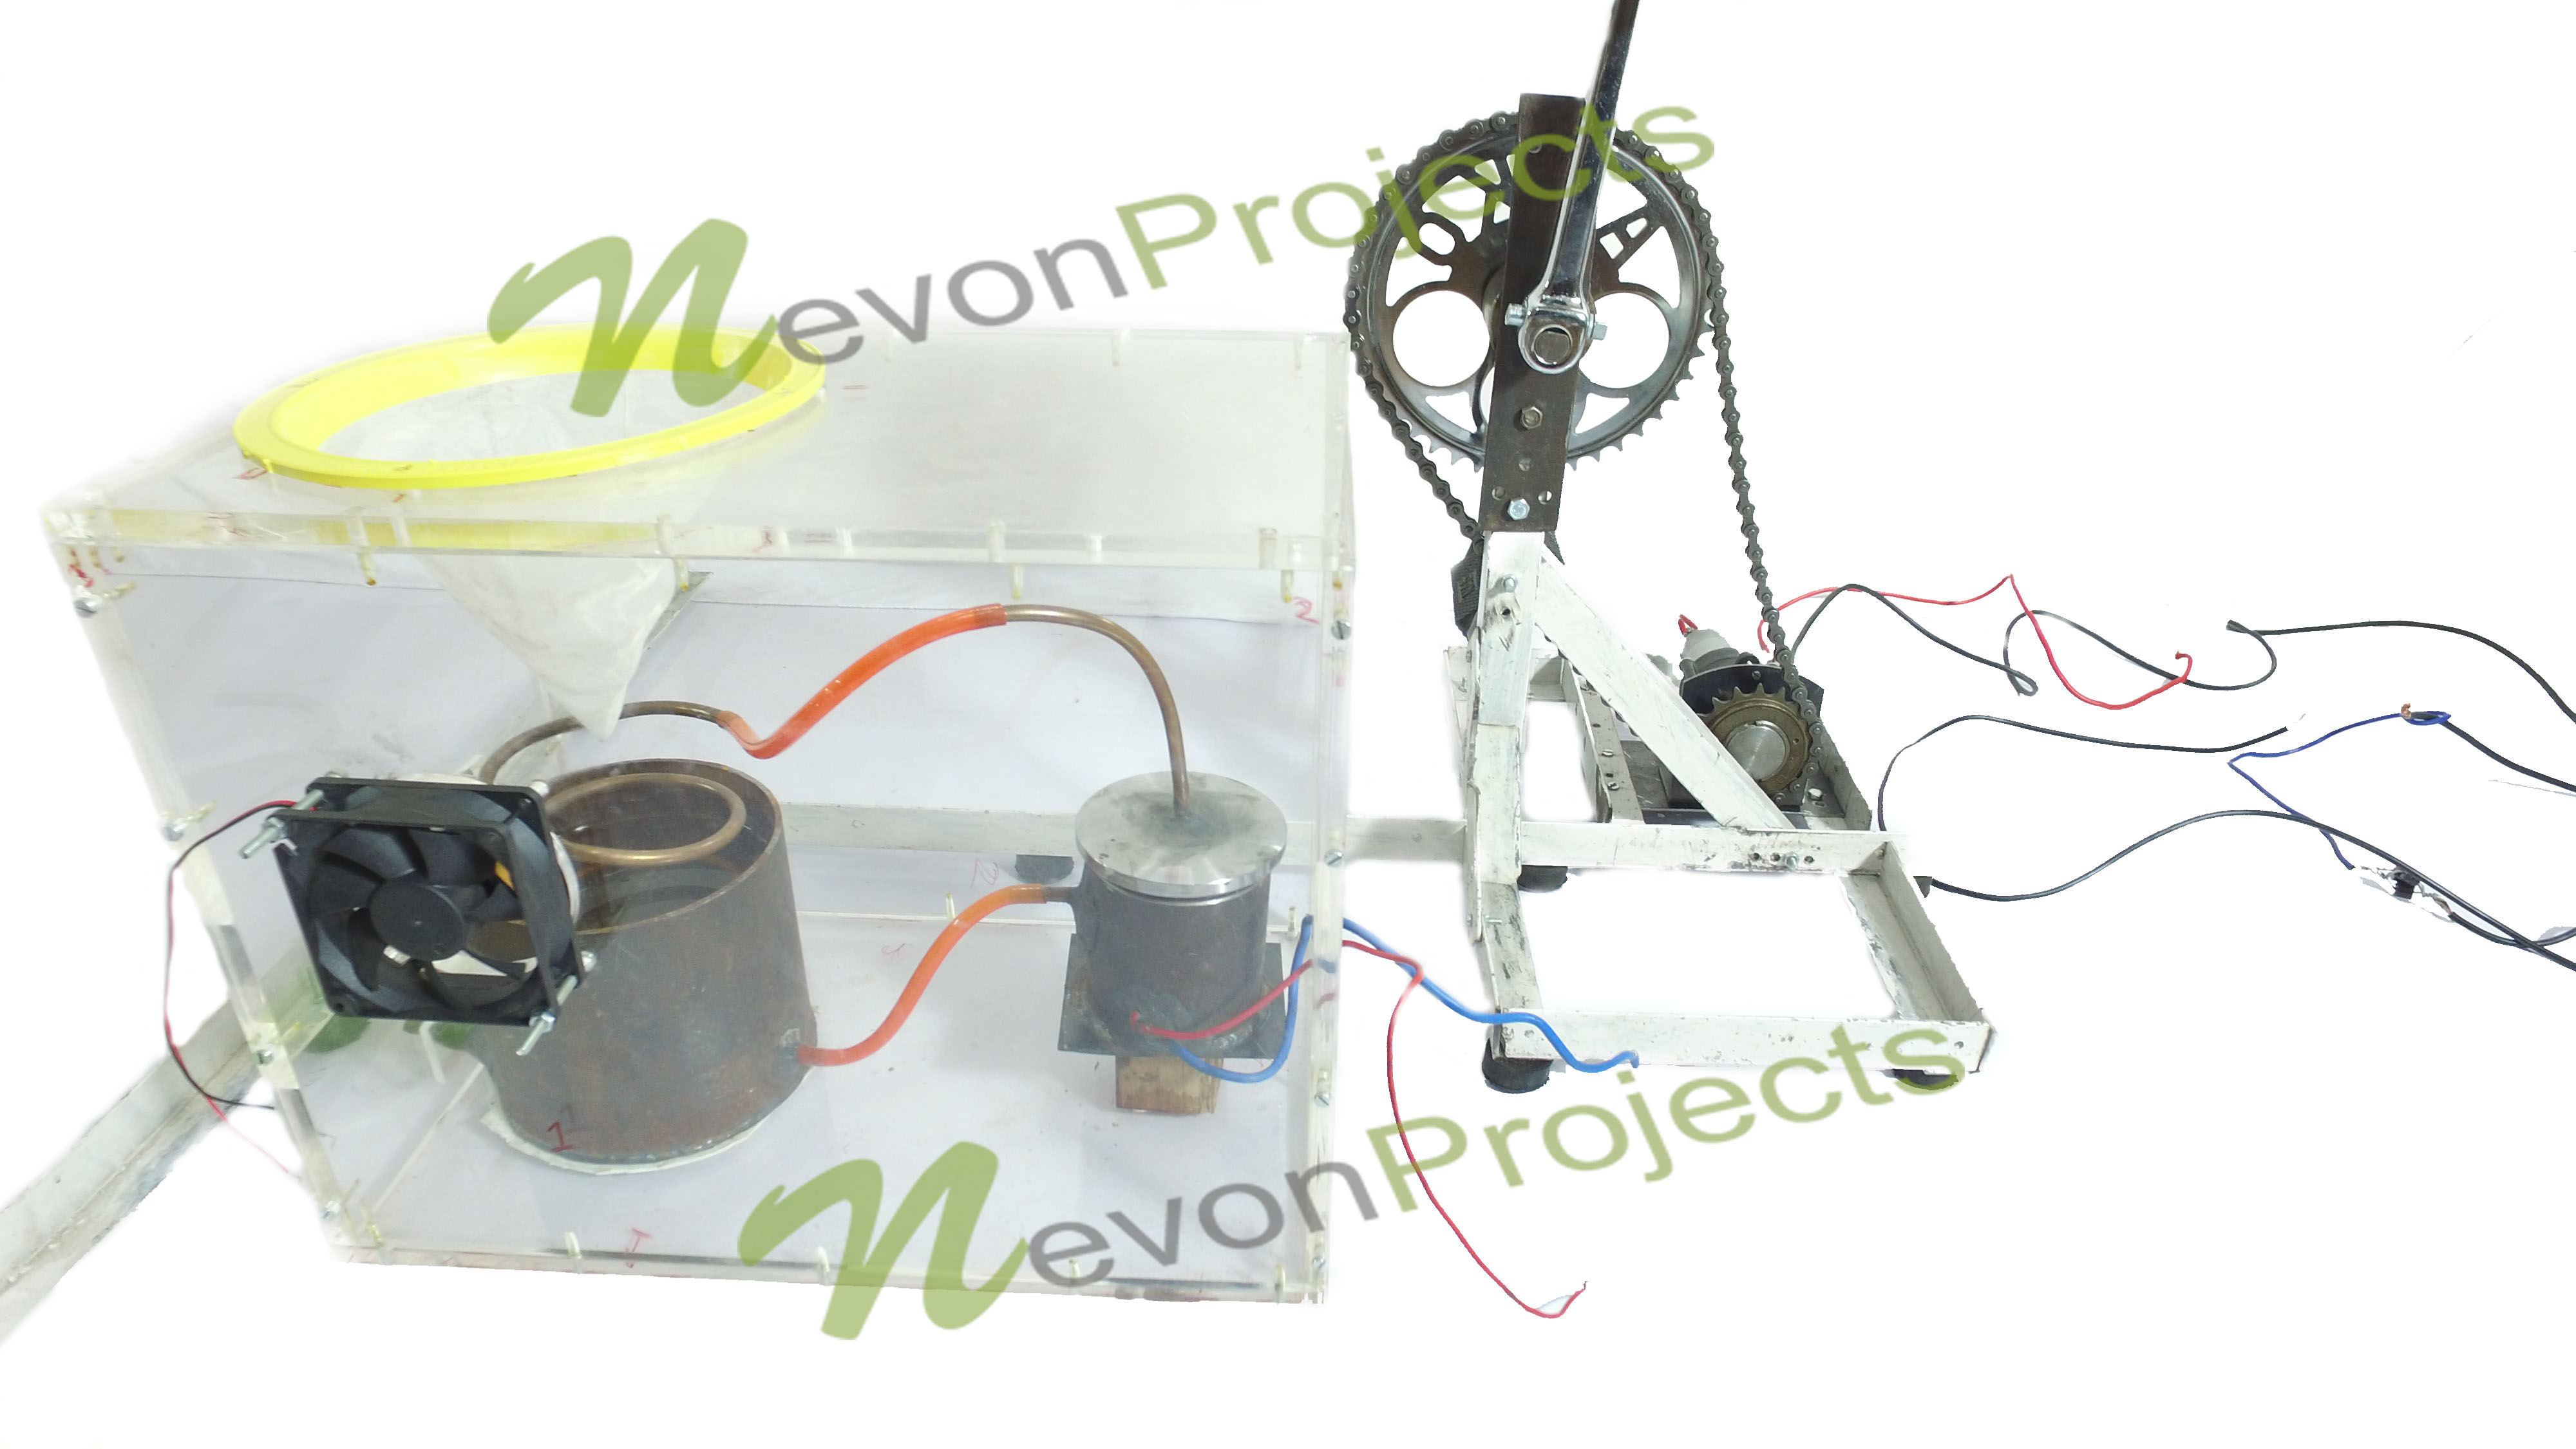 Pedal Powered Water Purifier System Filtration Diagram Project